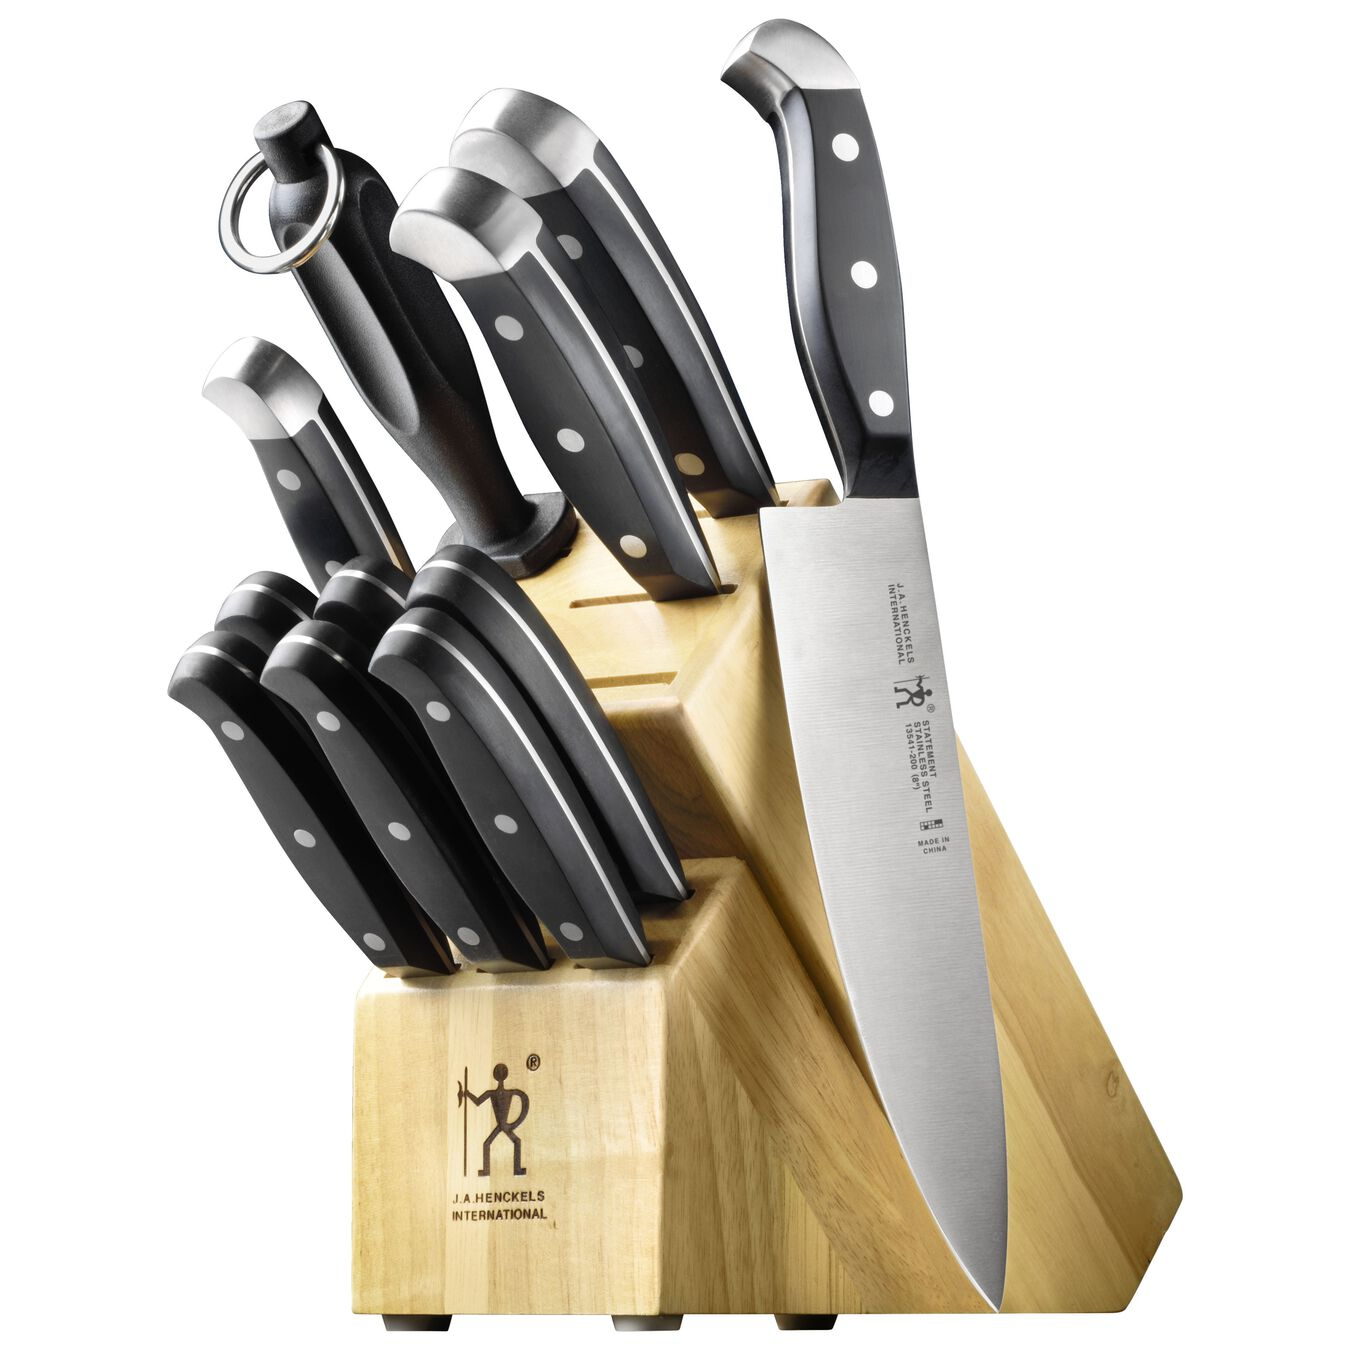 12-pc Knife Block Set,,large 1